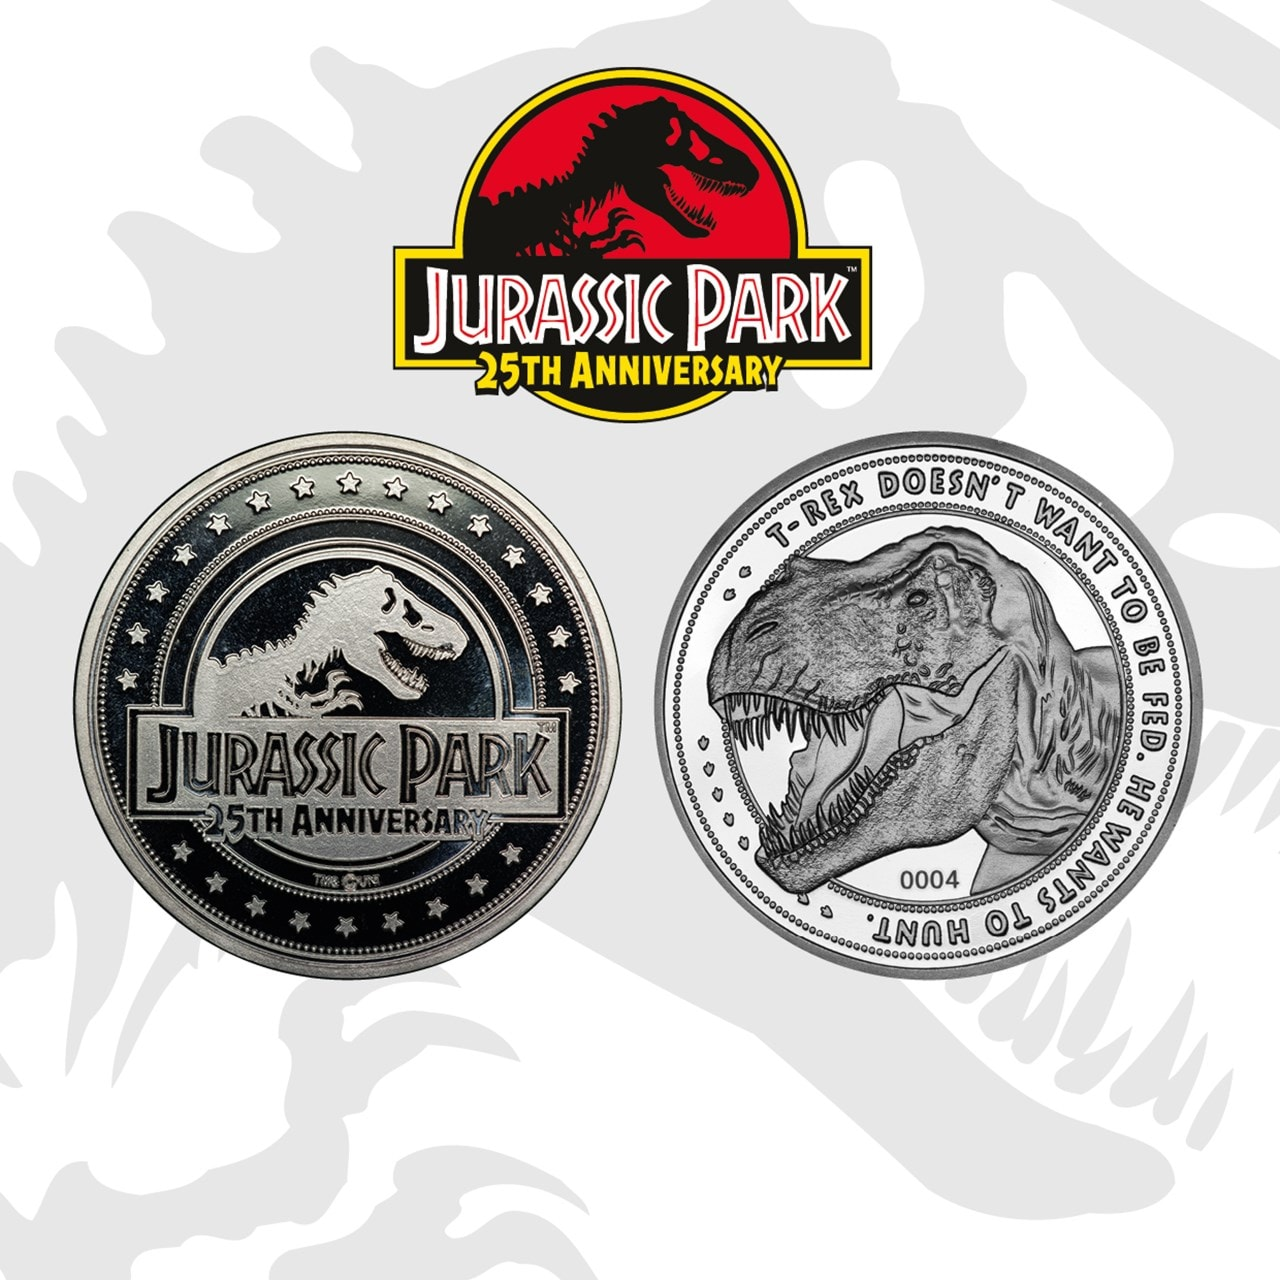 Jurassic Park Limited Edition Coin - 1